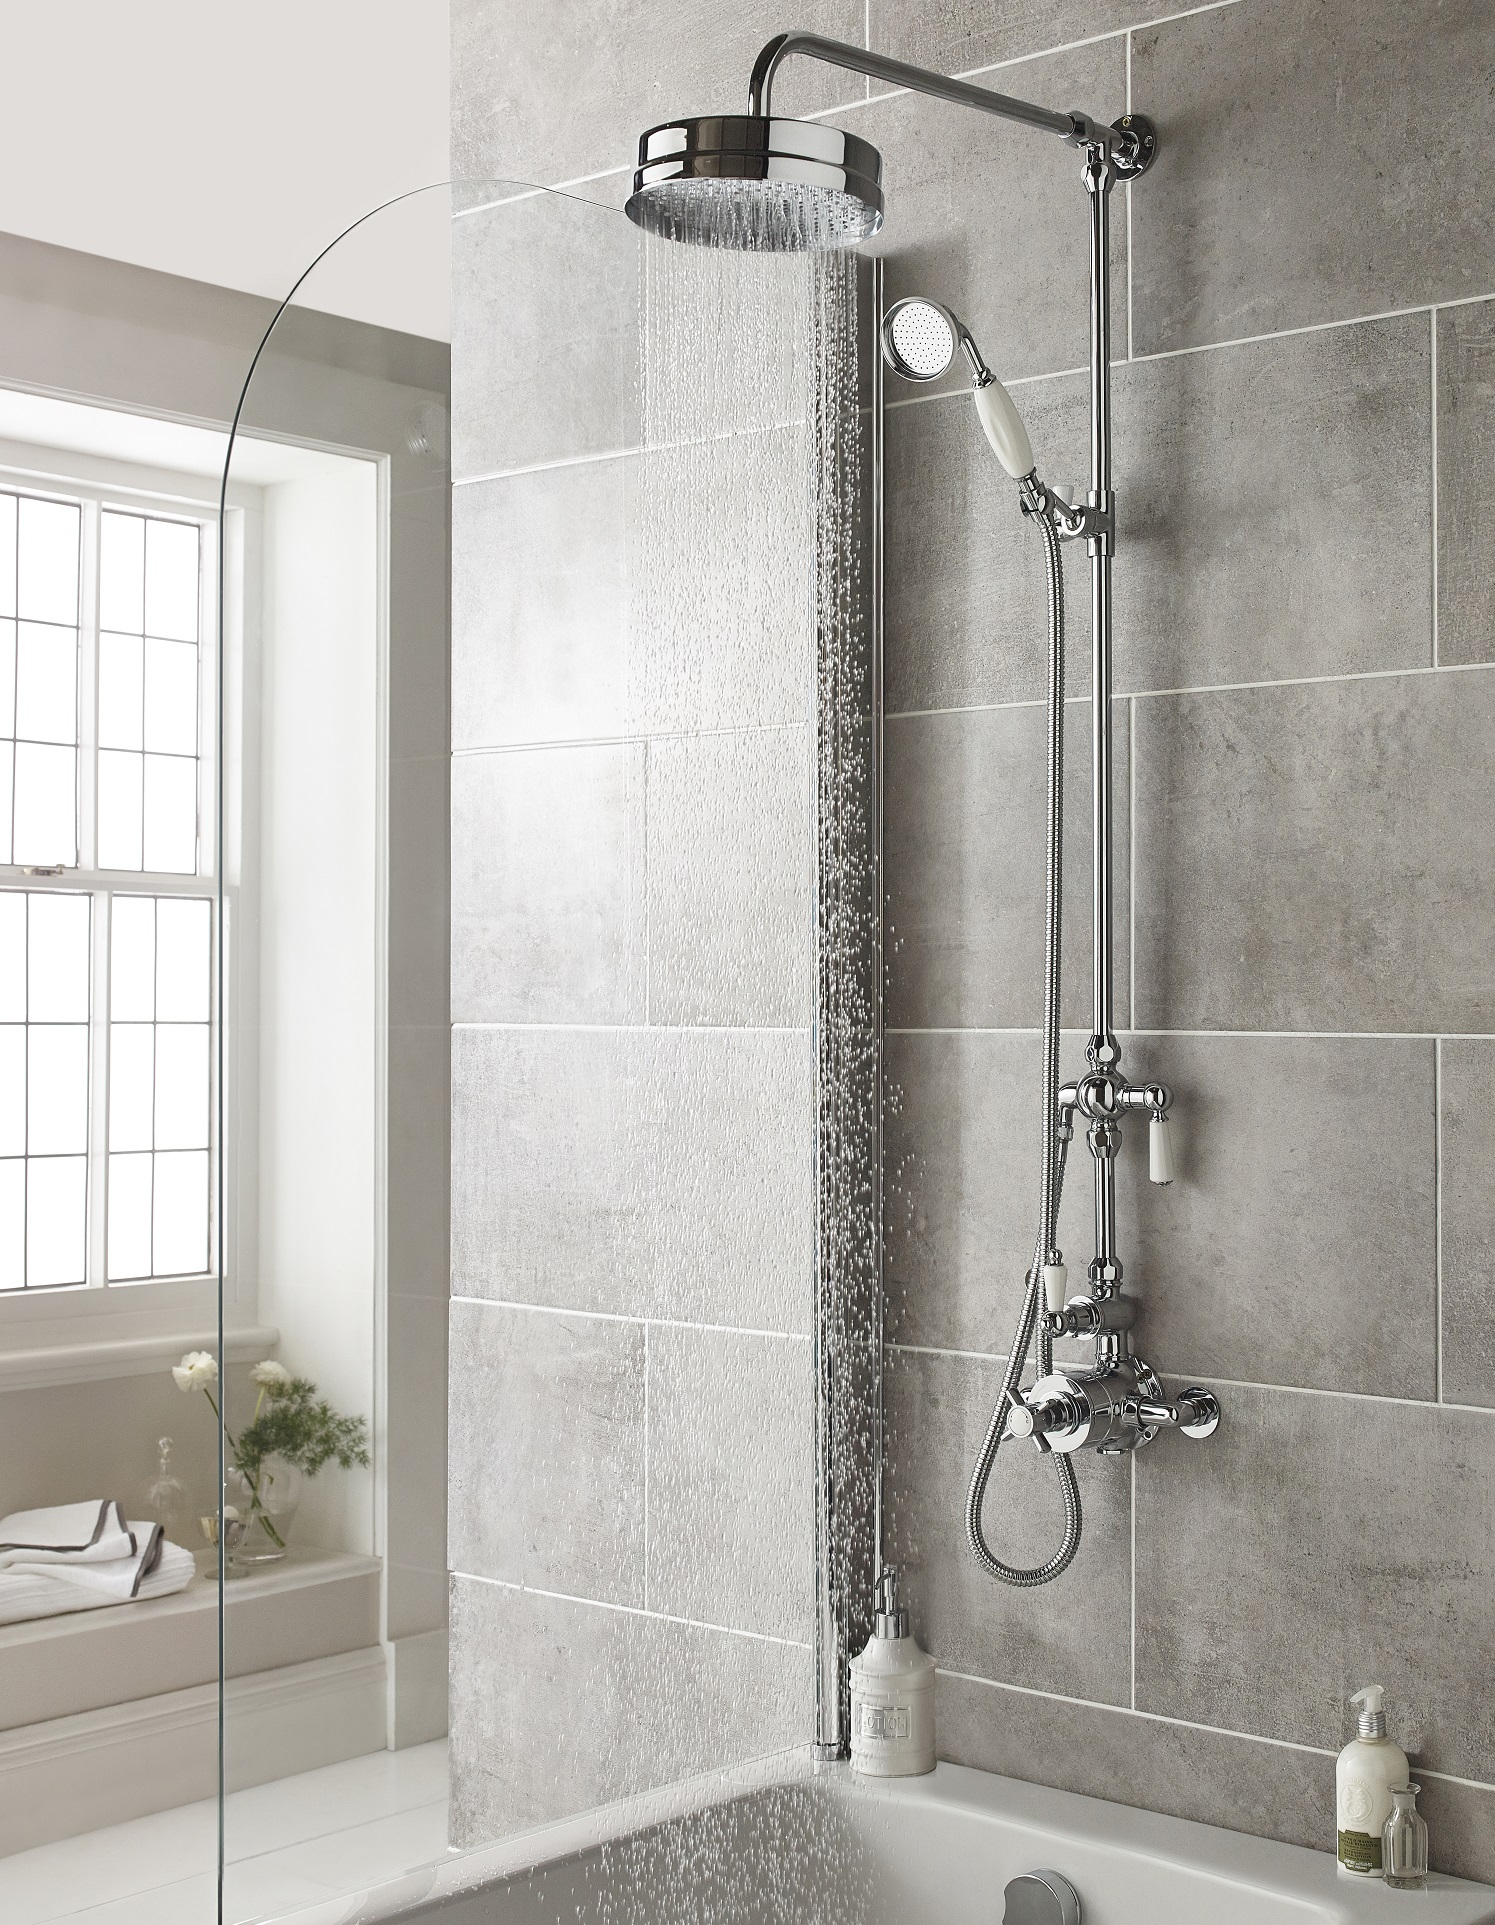 The Shower Buyer\'s Guide - BigBathroomShop